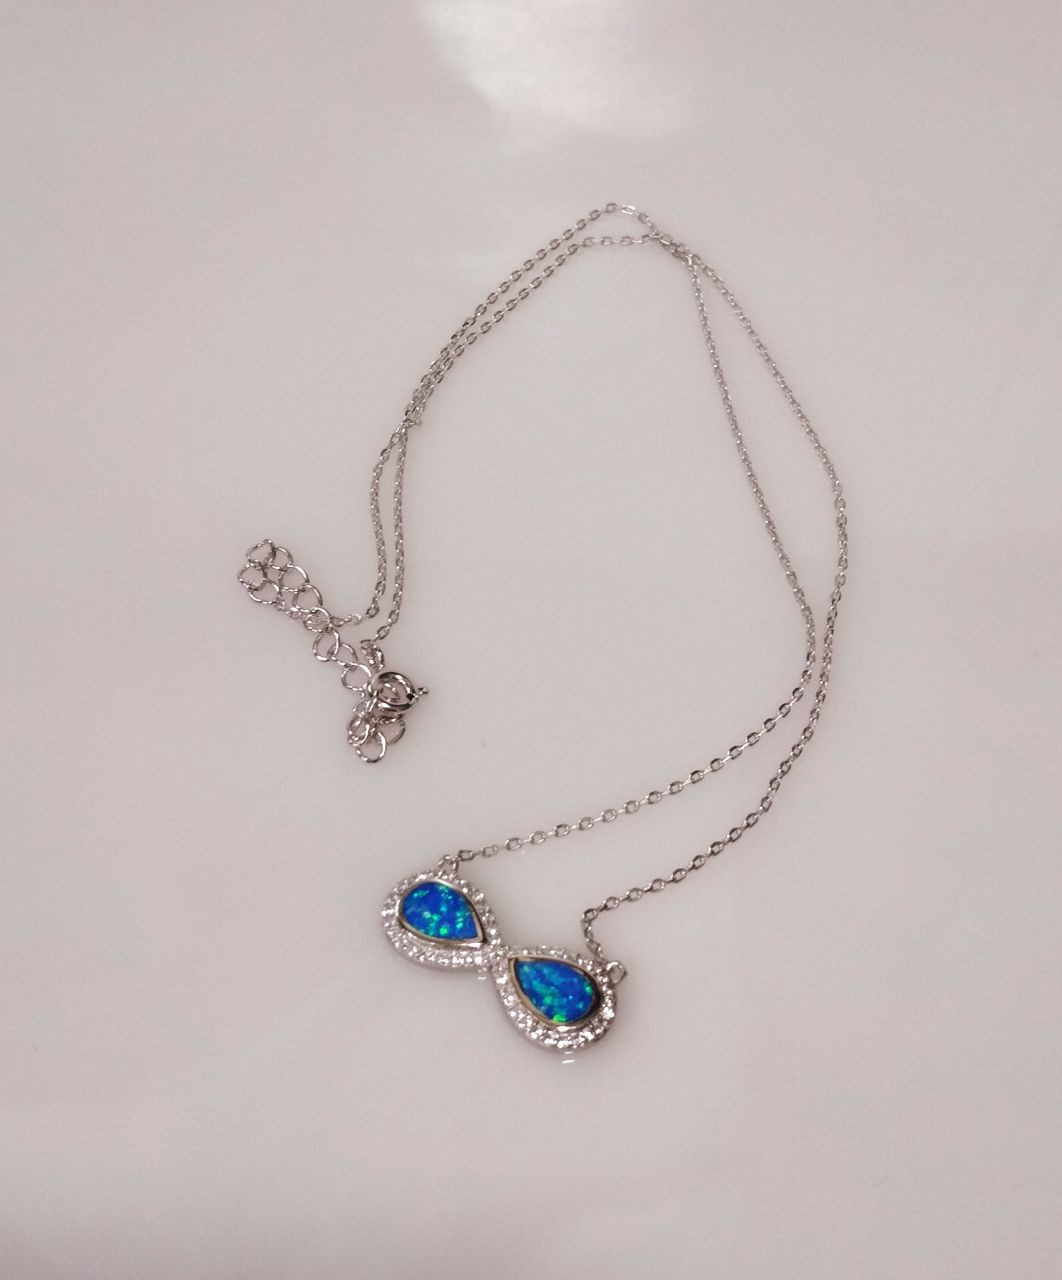 Handmade 925 Silver Necklace With Opal Stone , Infinity Symbol.